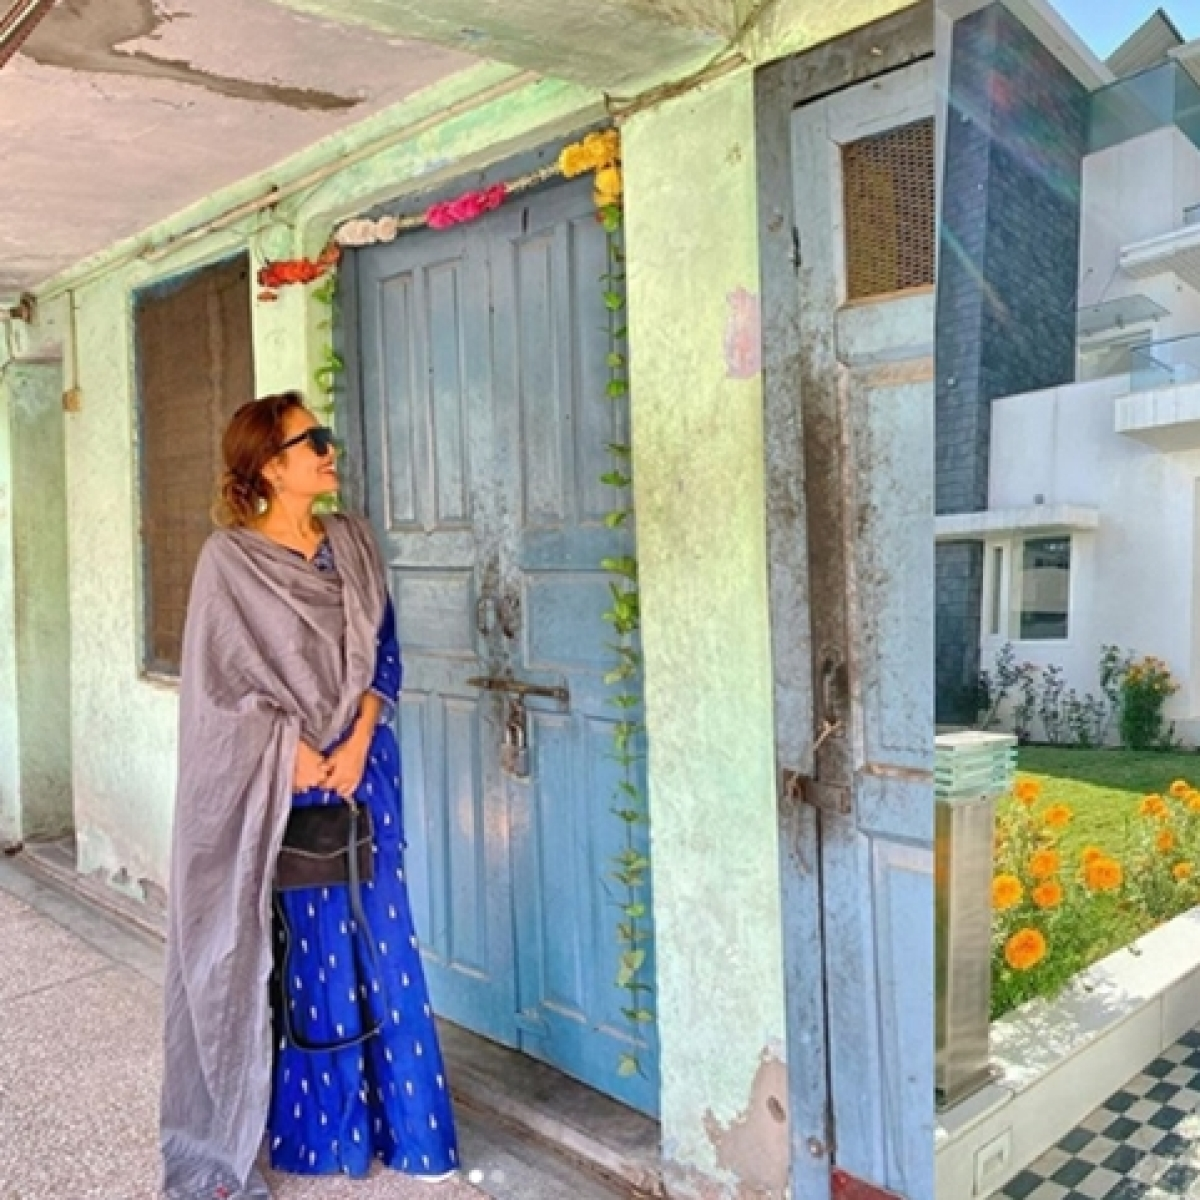 Neha Kakkar buys a posh bungalow in the same city where her family lived in a one-room rented house